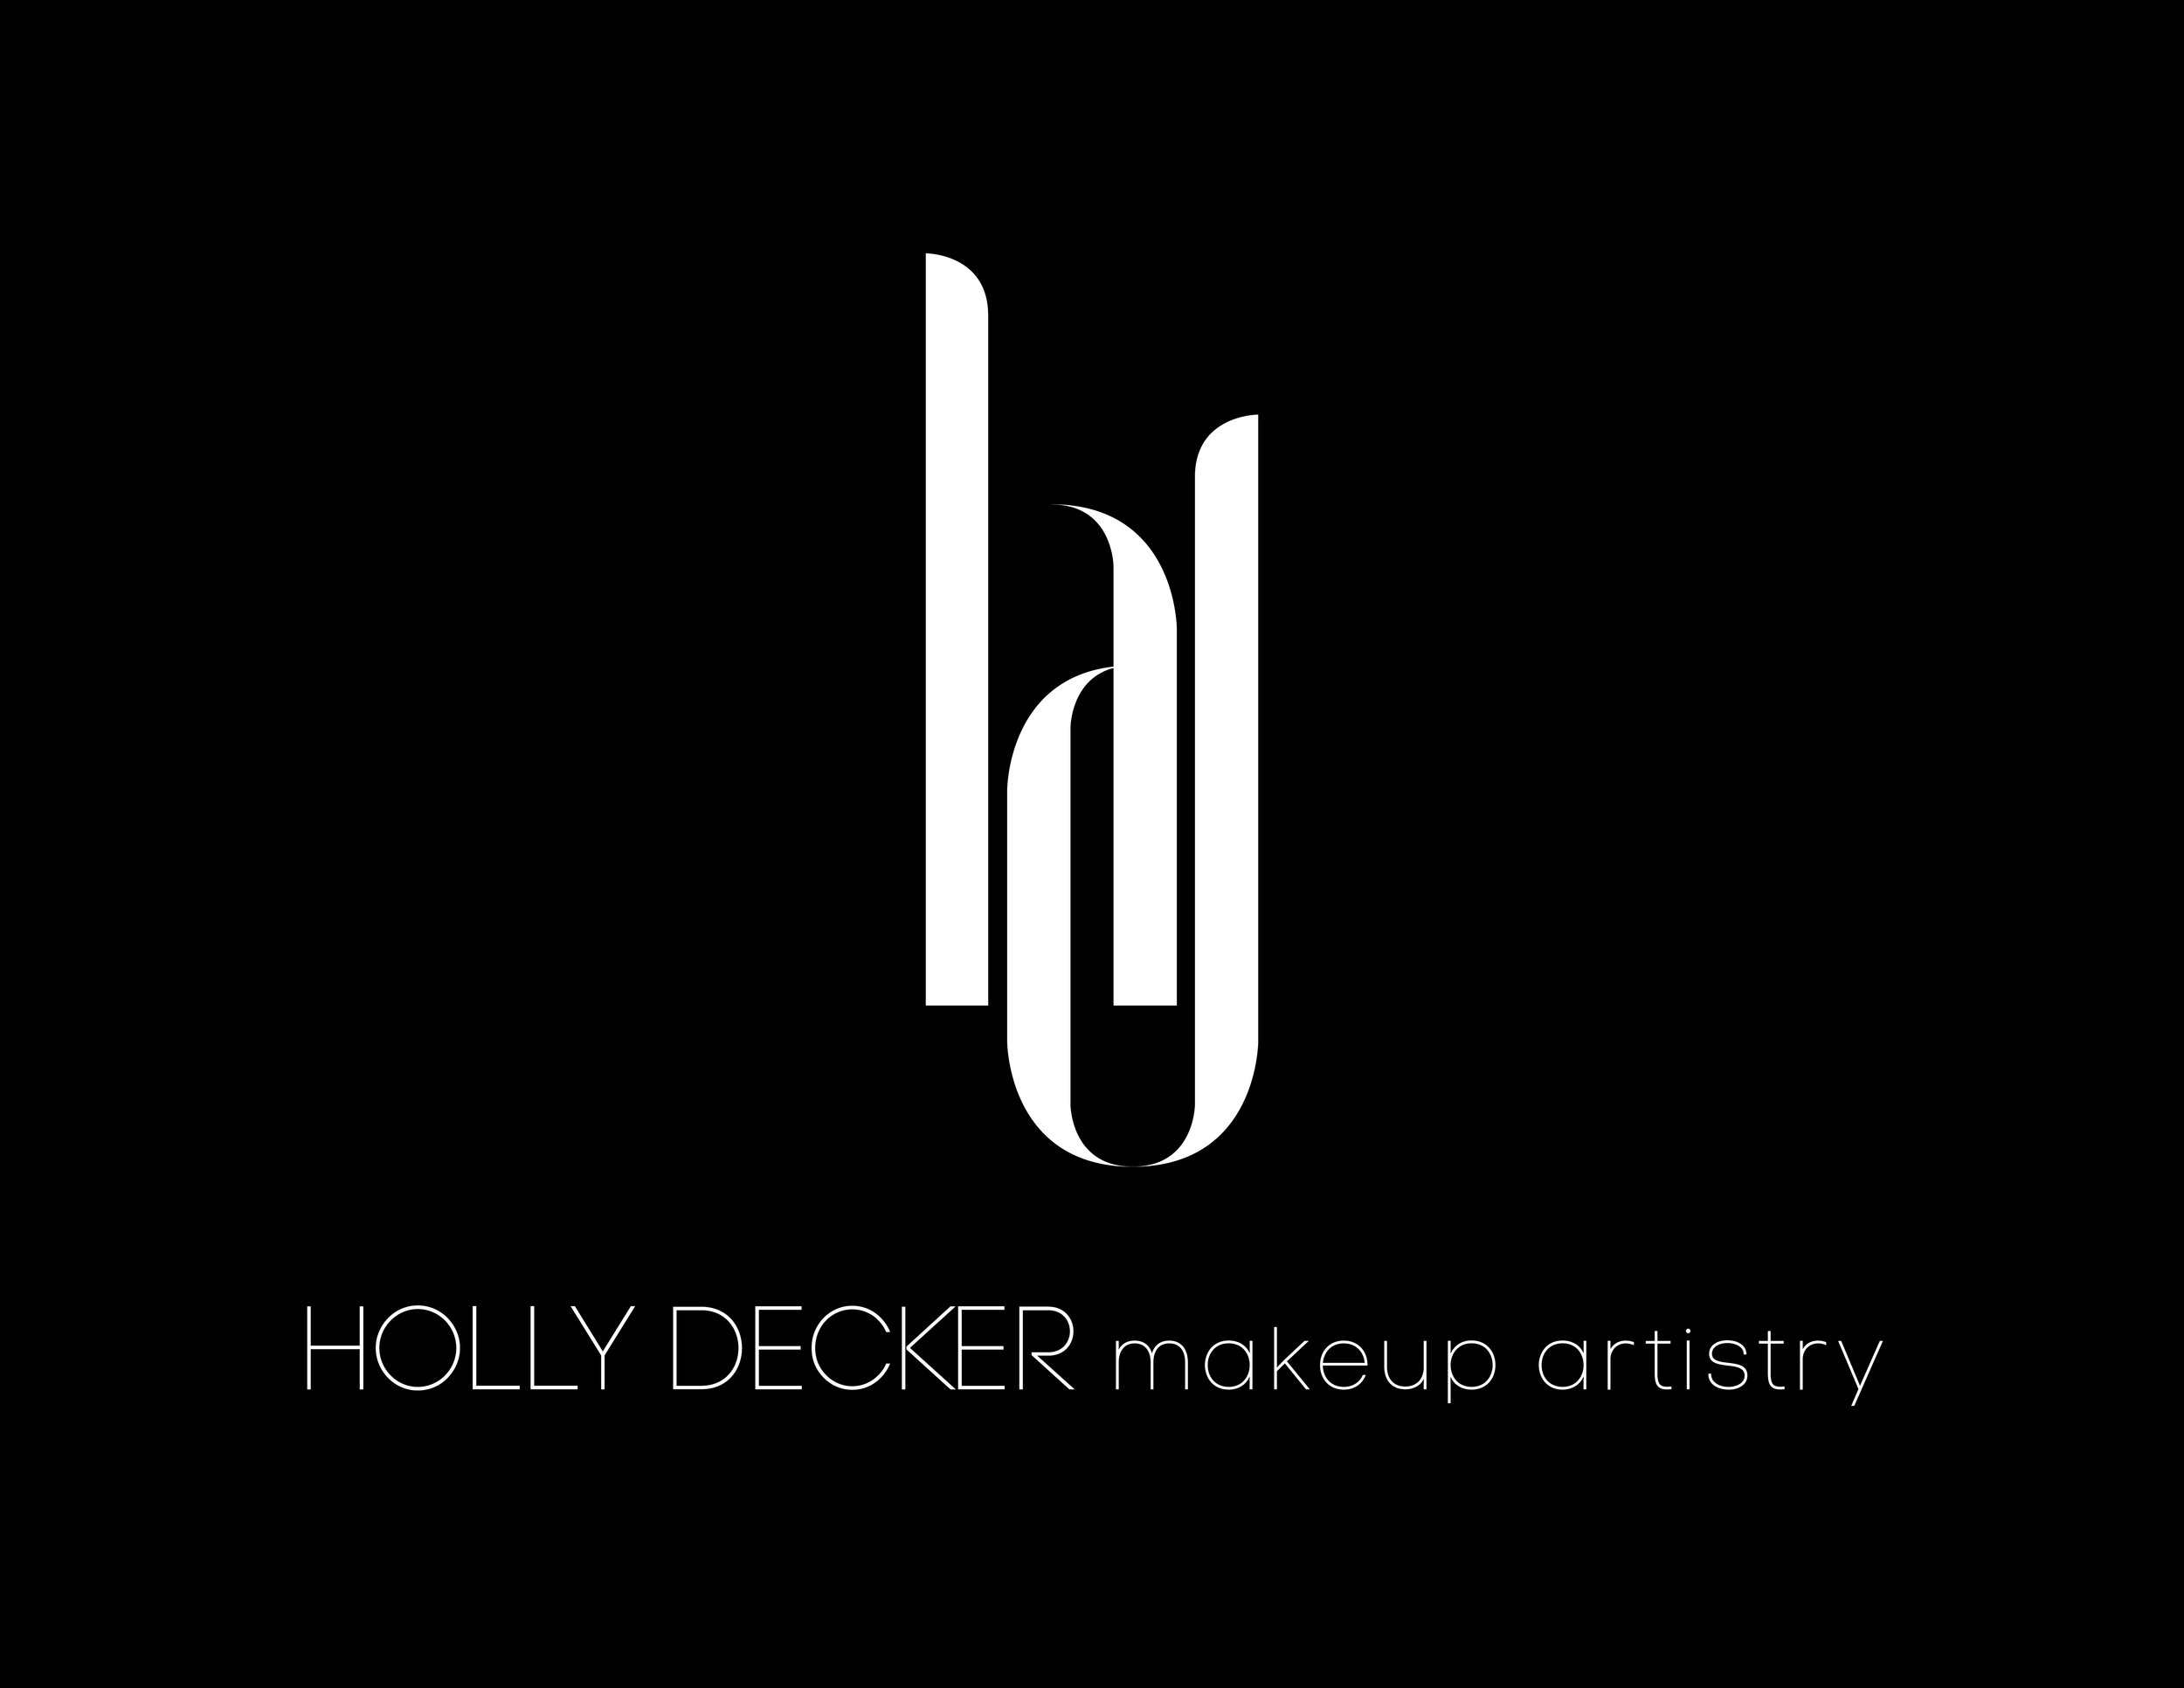 sabex logo Holly Decker.jpg